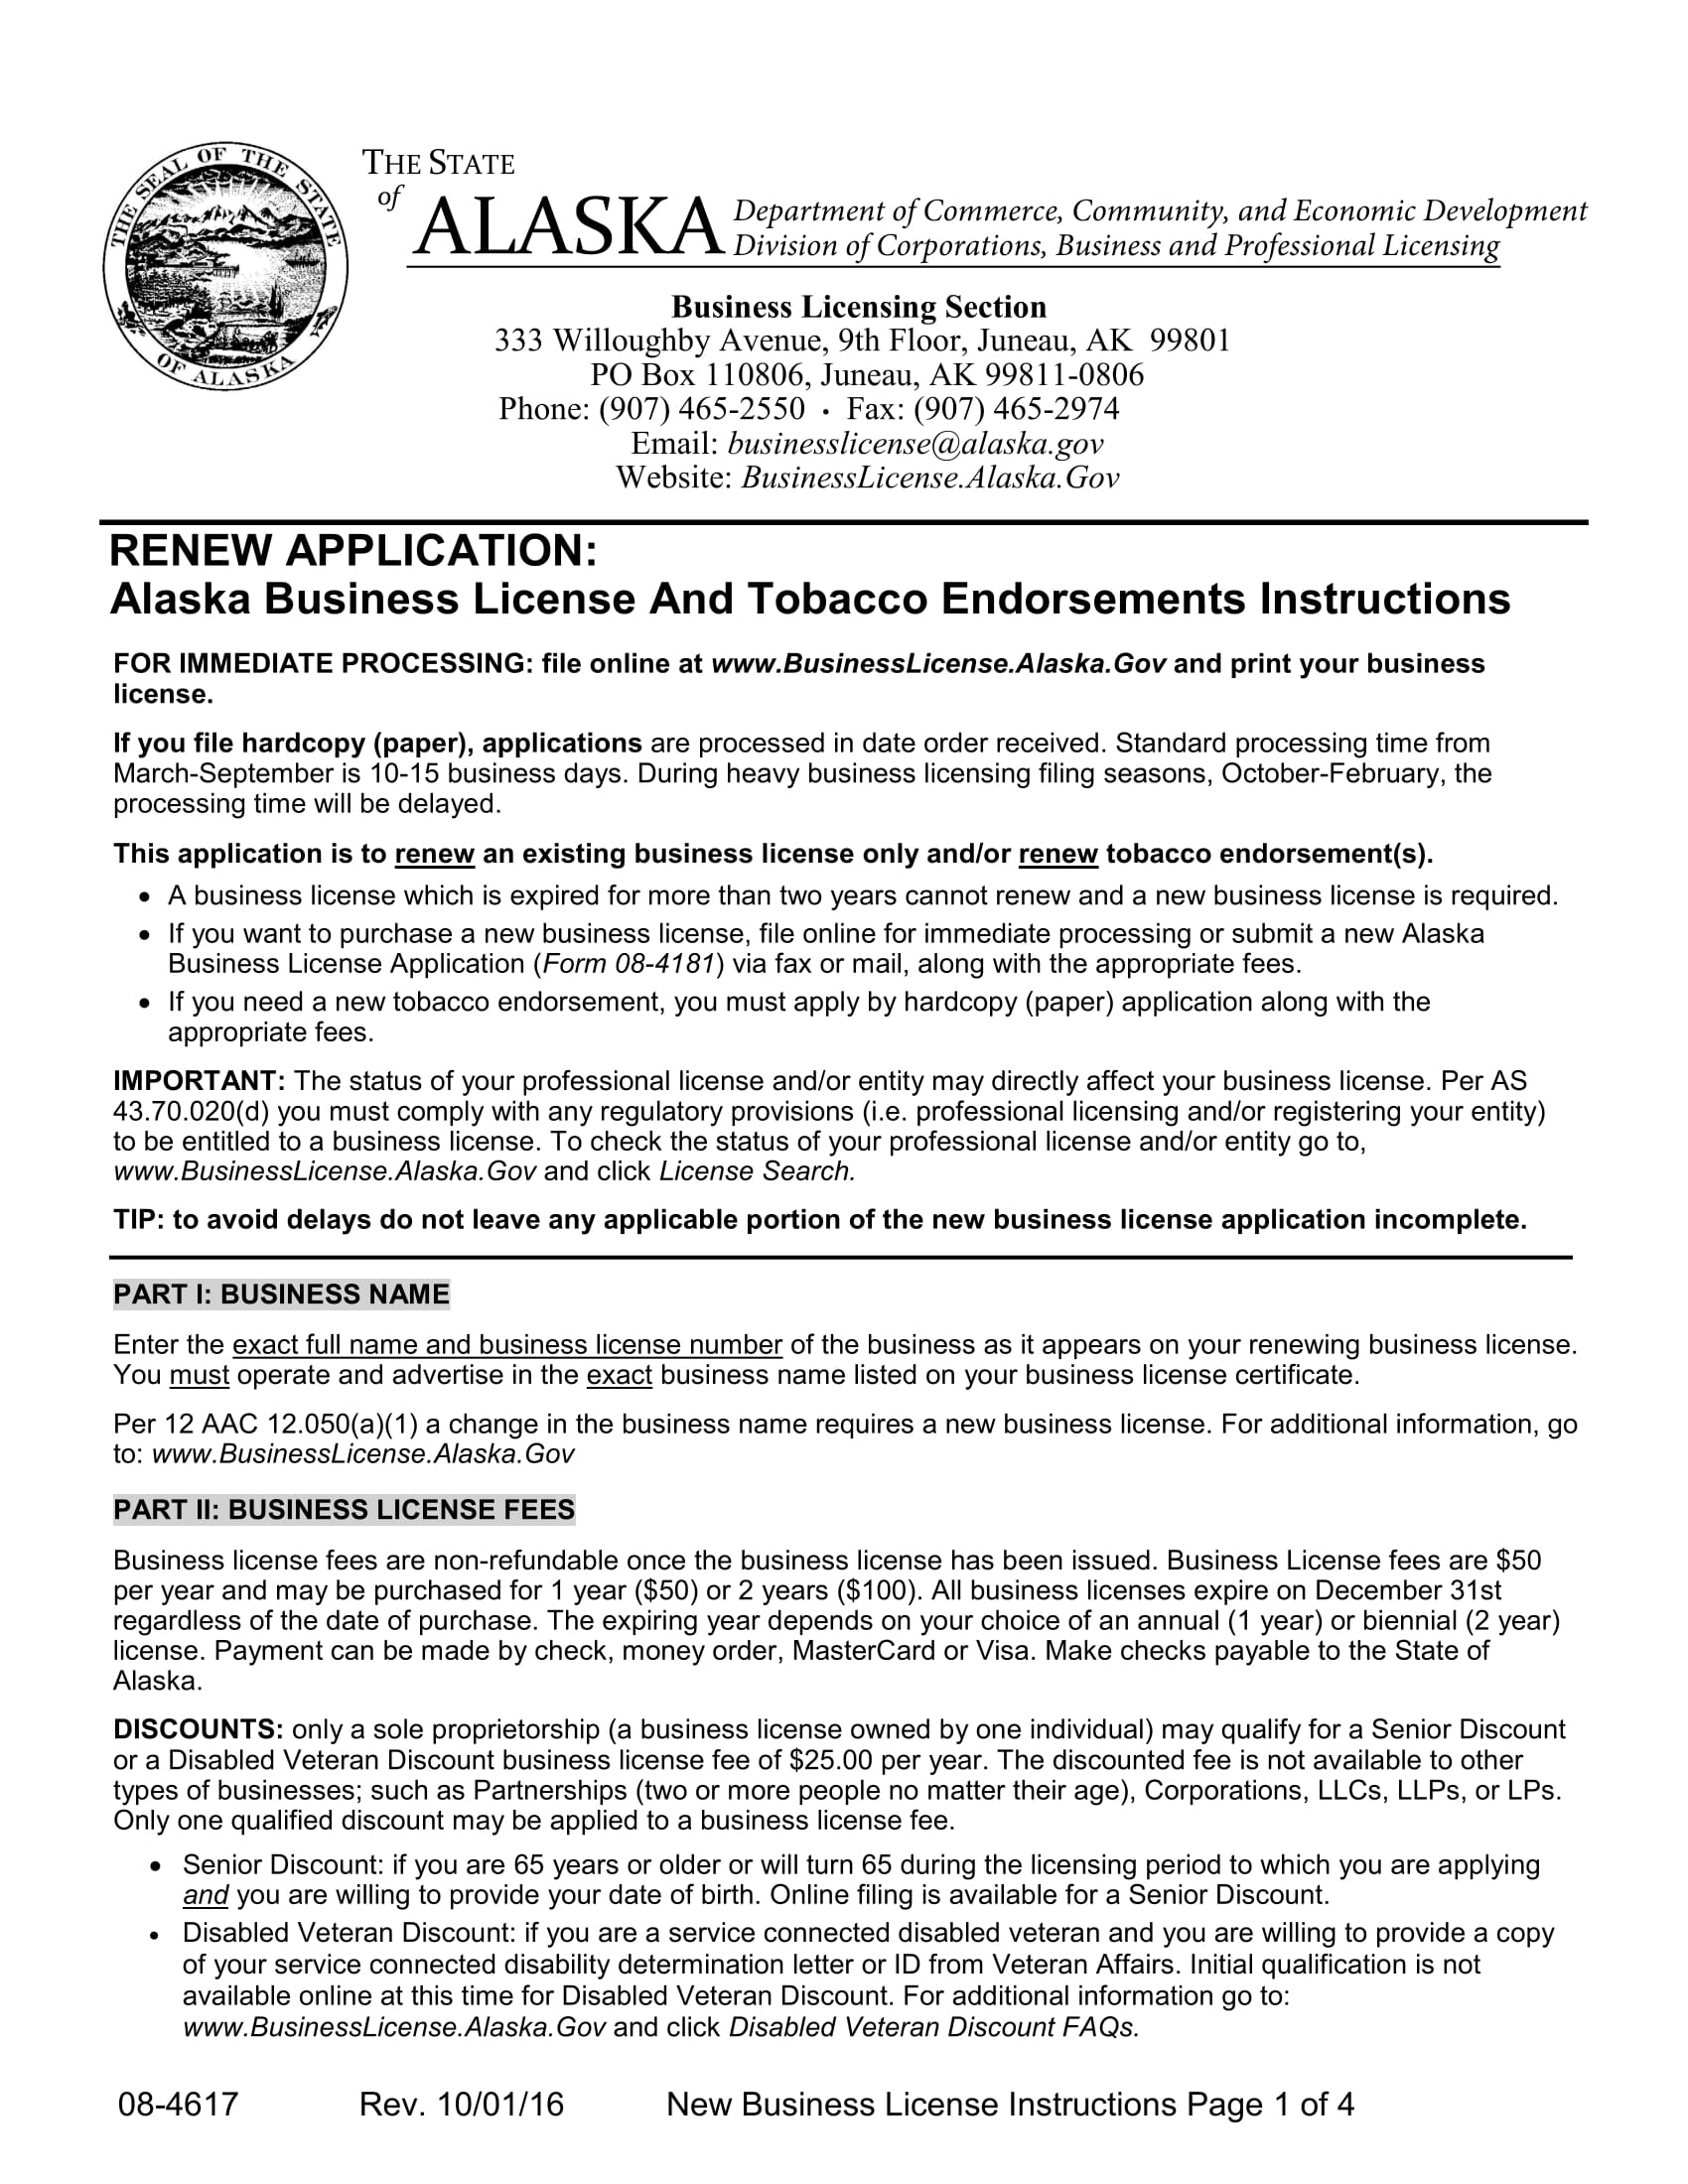 Free Renewal Application Only Alaska Business License Wikiform